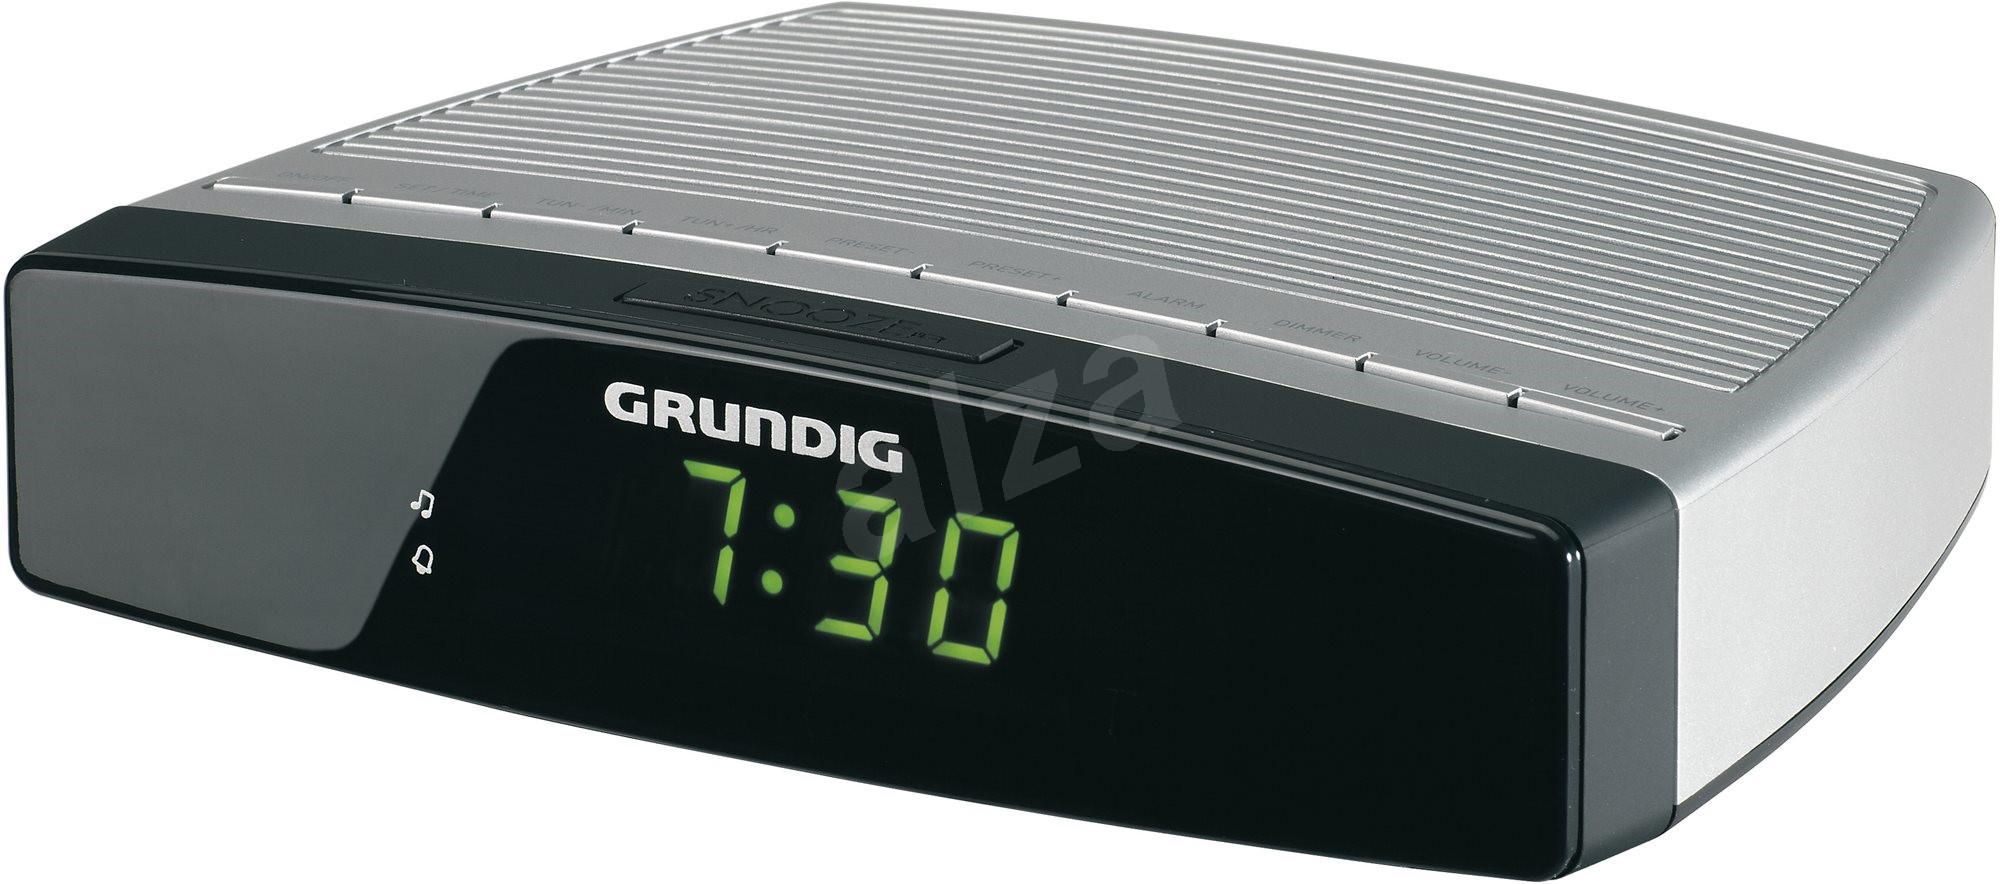 grundig sonoclock 600 radio alarm clock. Black Bedroom Furniture Sets. Home Design Ideas